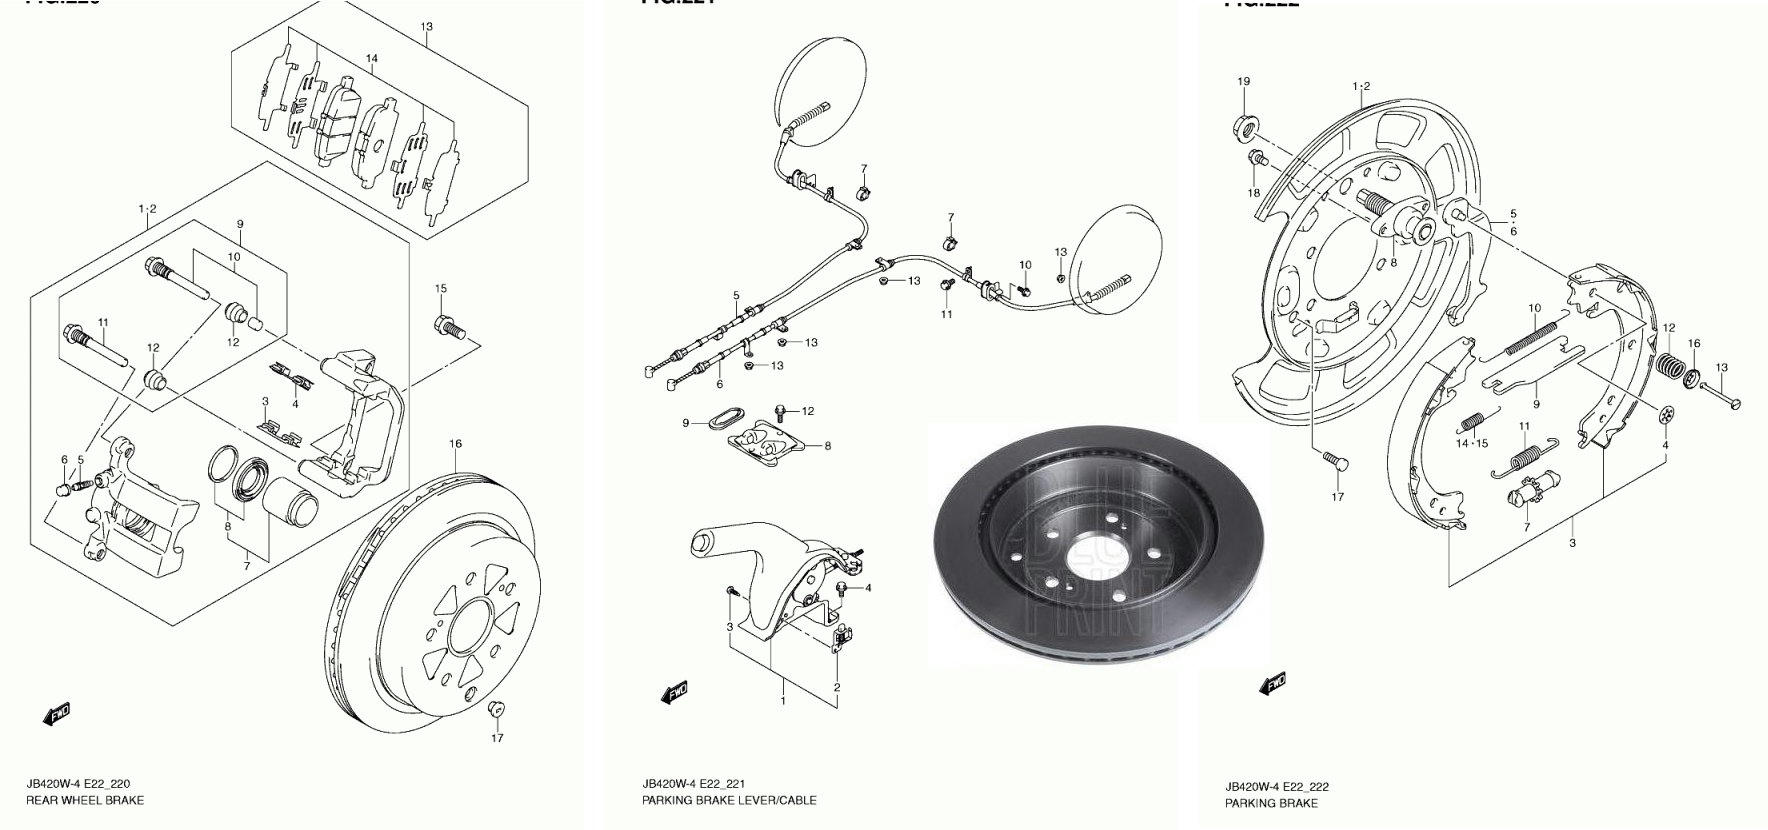 suzuki xl7 rear brake diagram